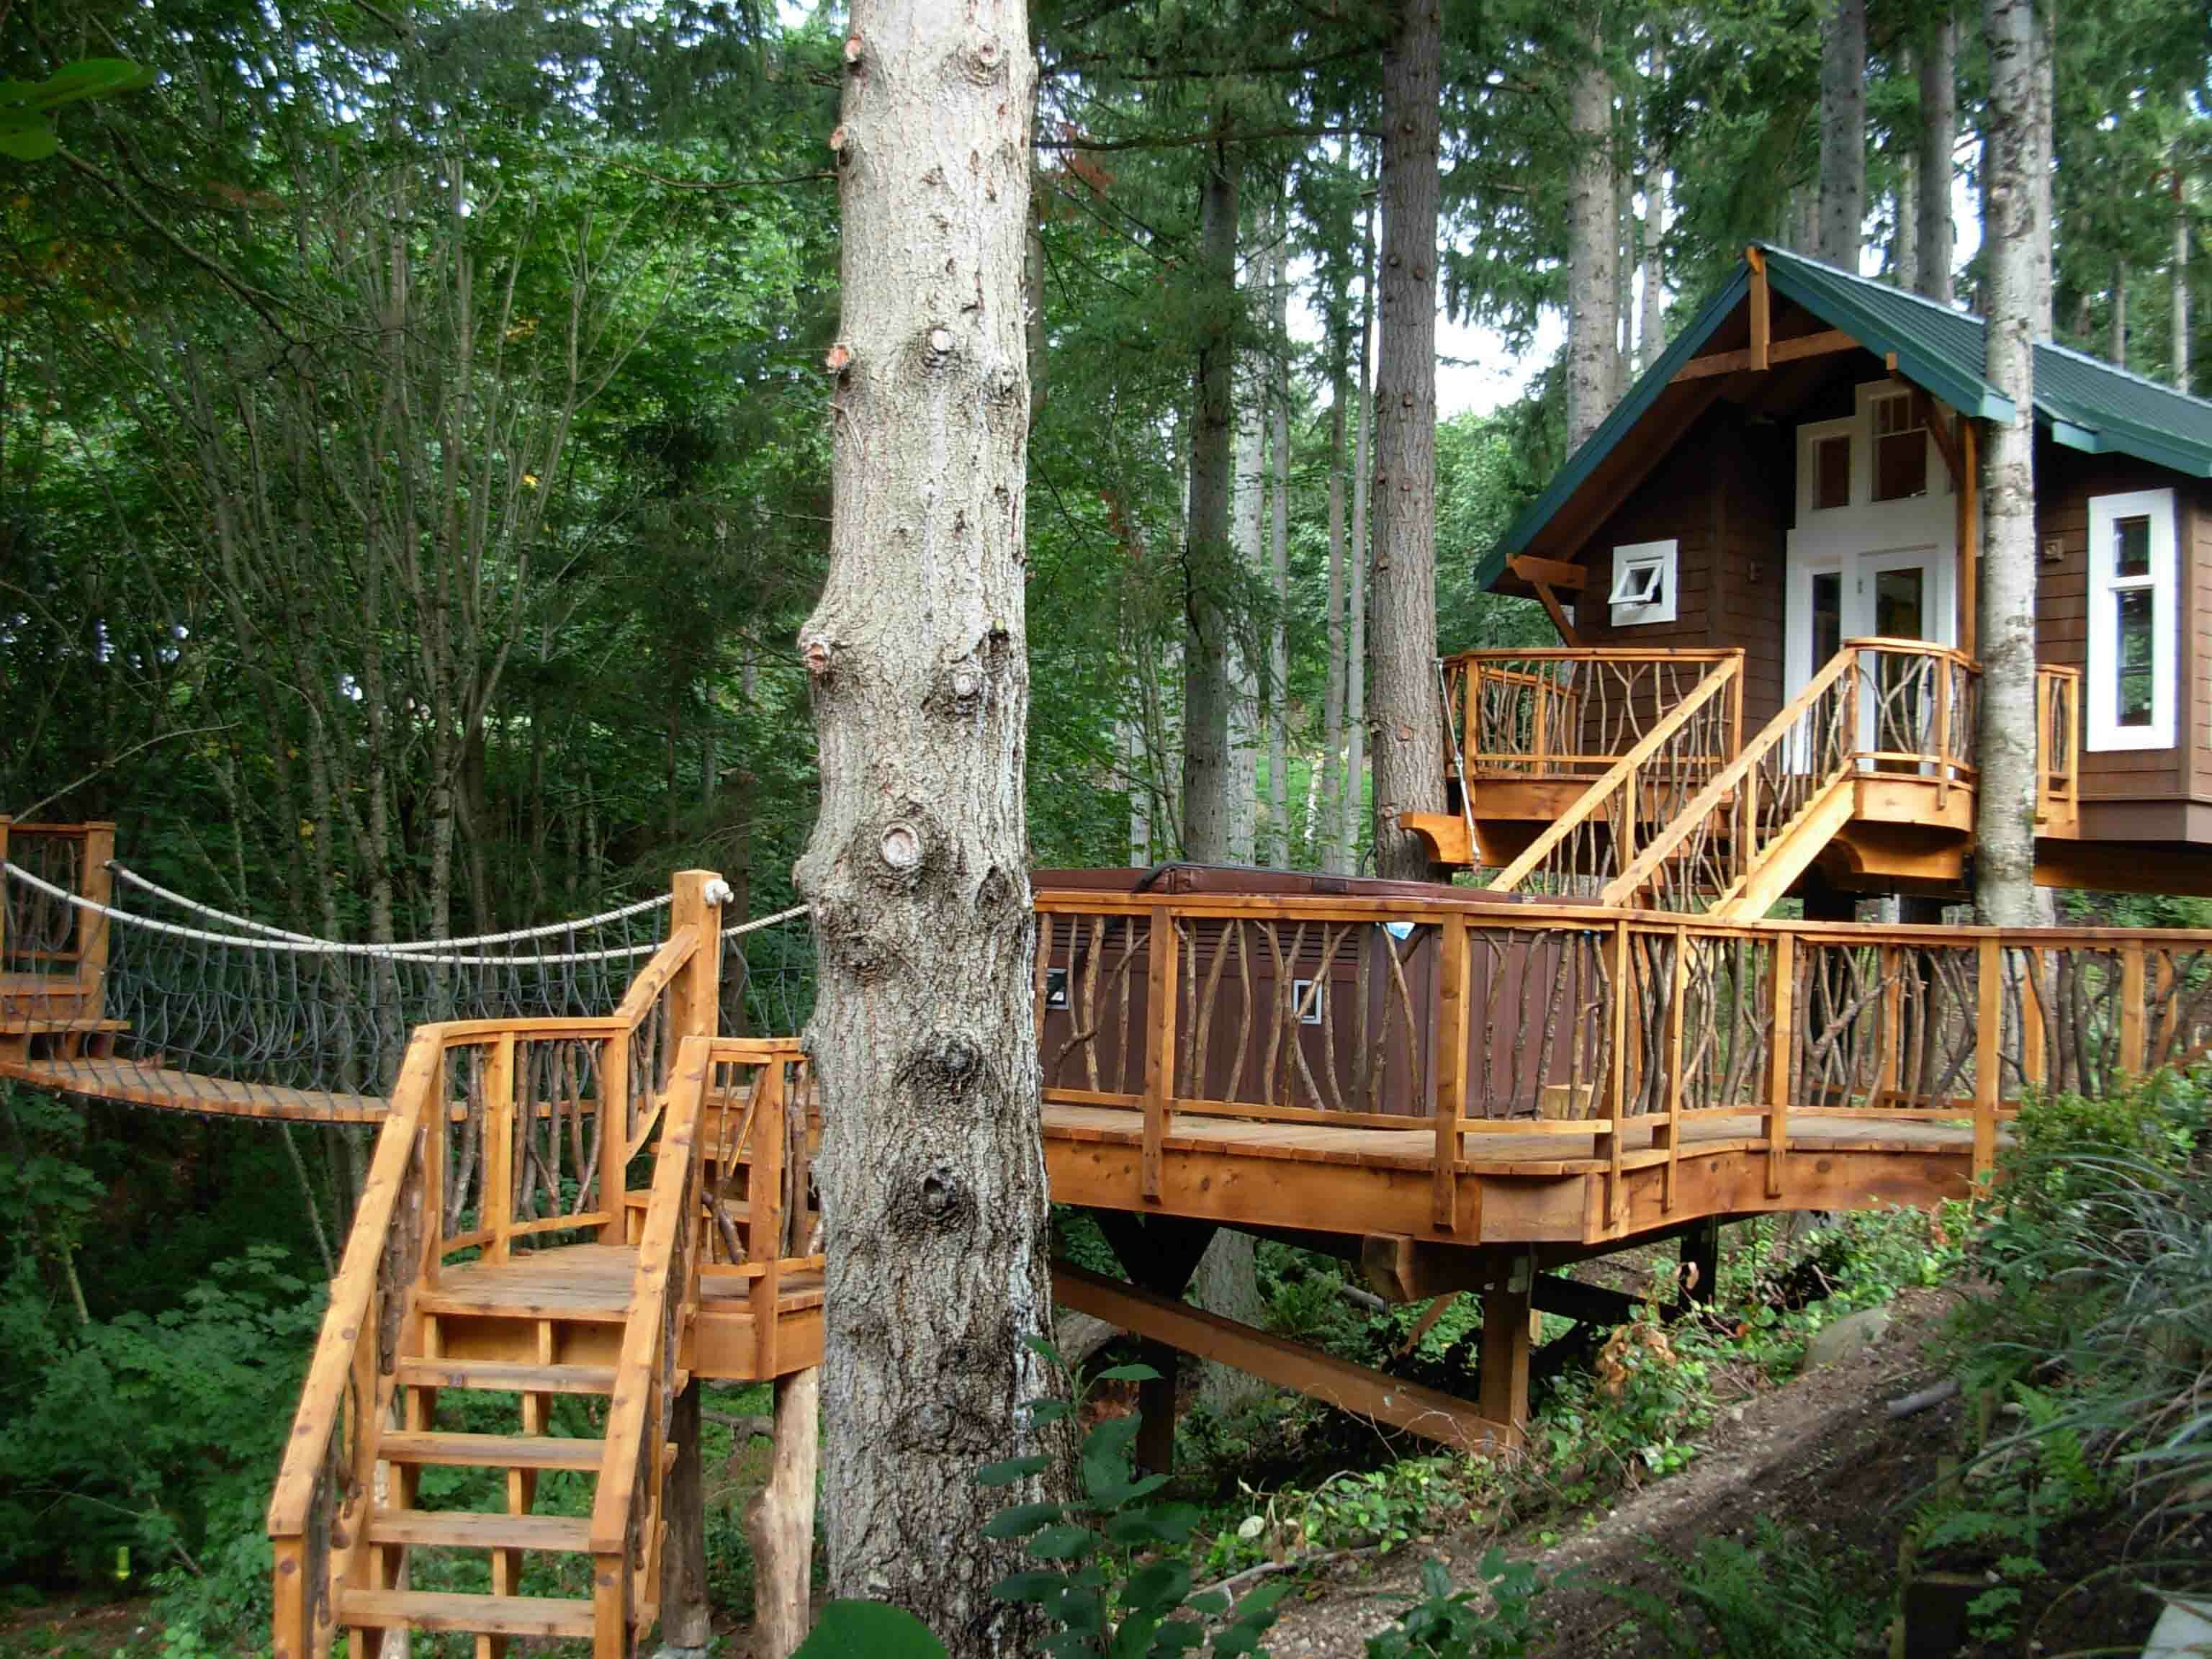 18 amazing tree house designs mostbeautifulthings for Free treehouse plans and designs